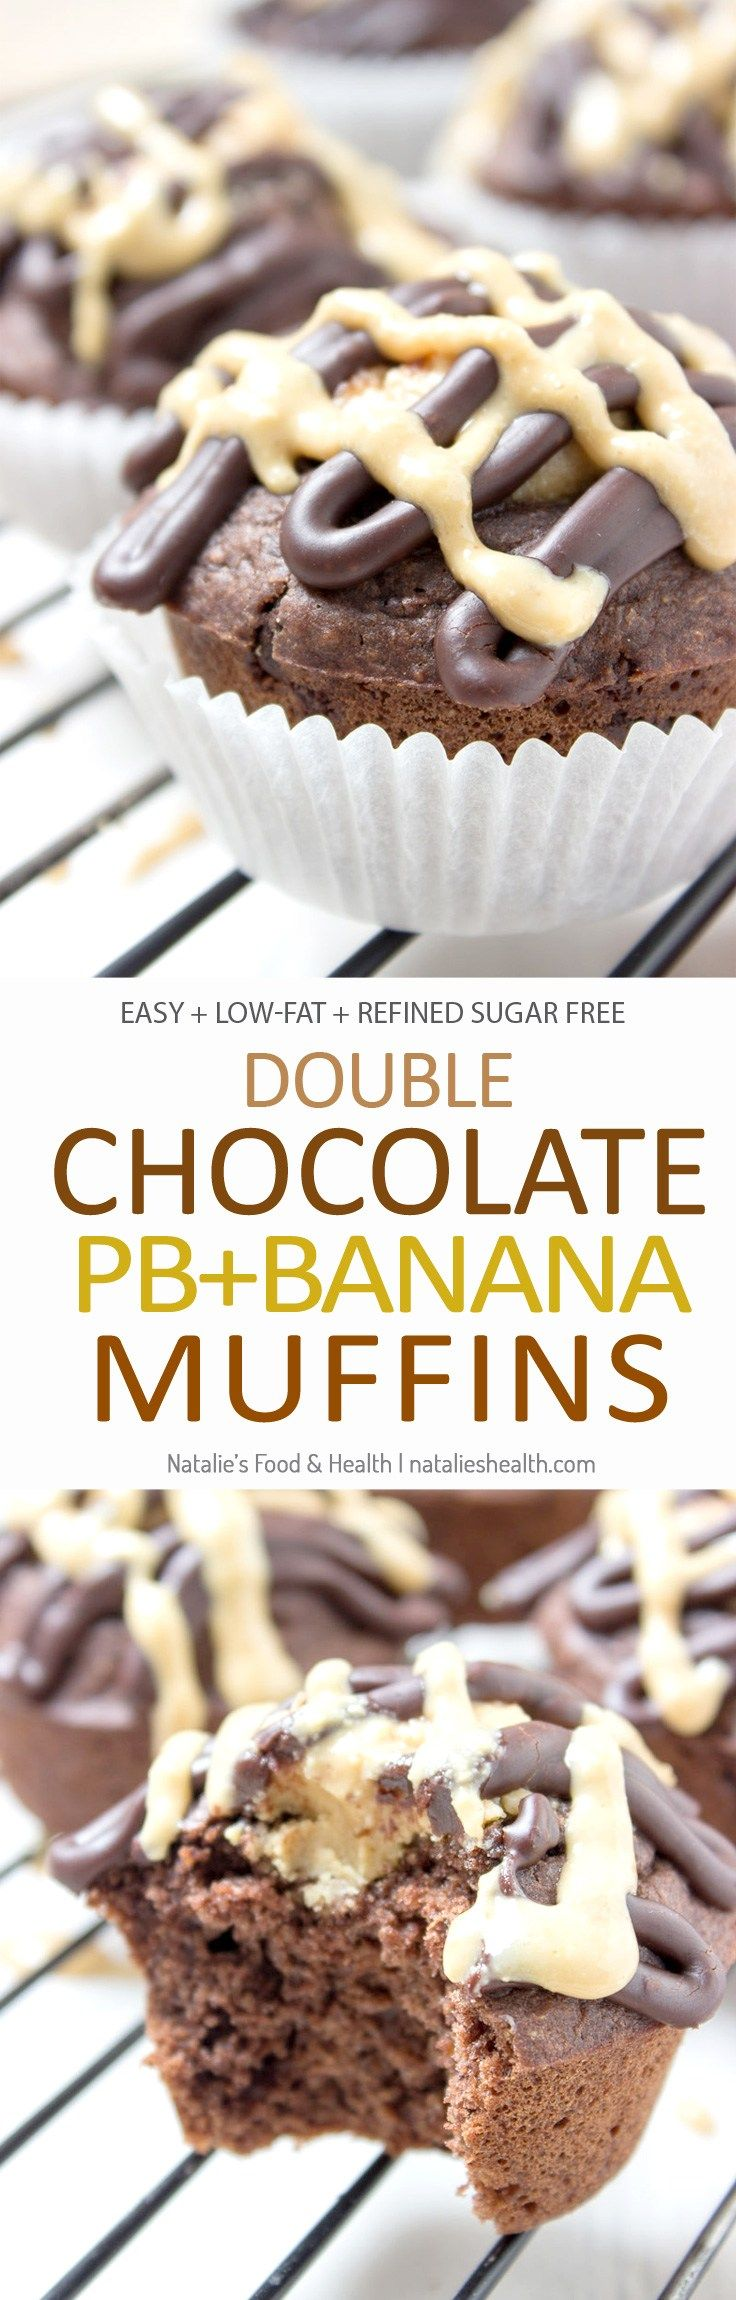 Double Chocolate Banana Muffins made with all HEALTHY ingredients, refined sugar-free, filled with dark chocolate and peanut butter. Perfect afternoon dessert, kids school snack or quick breakfast. CLICK to read more or PIN for later! [natalieshelath.com]